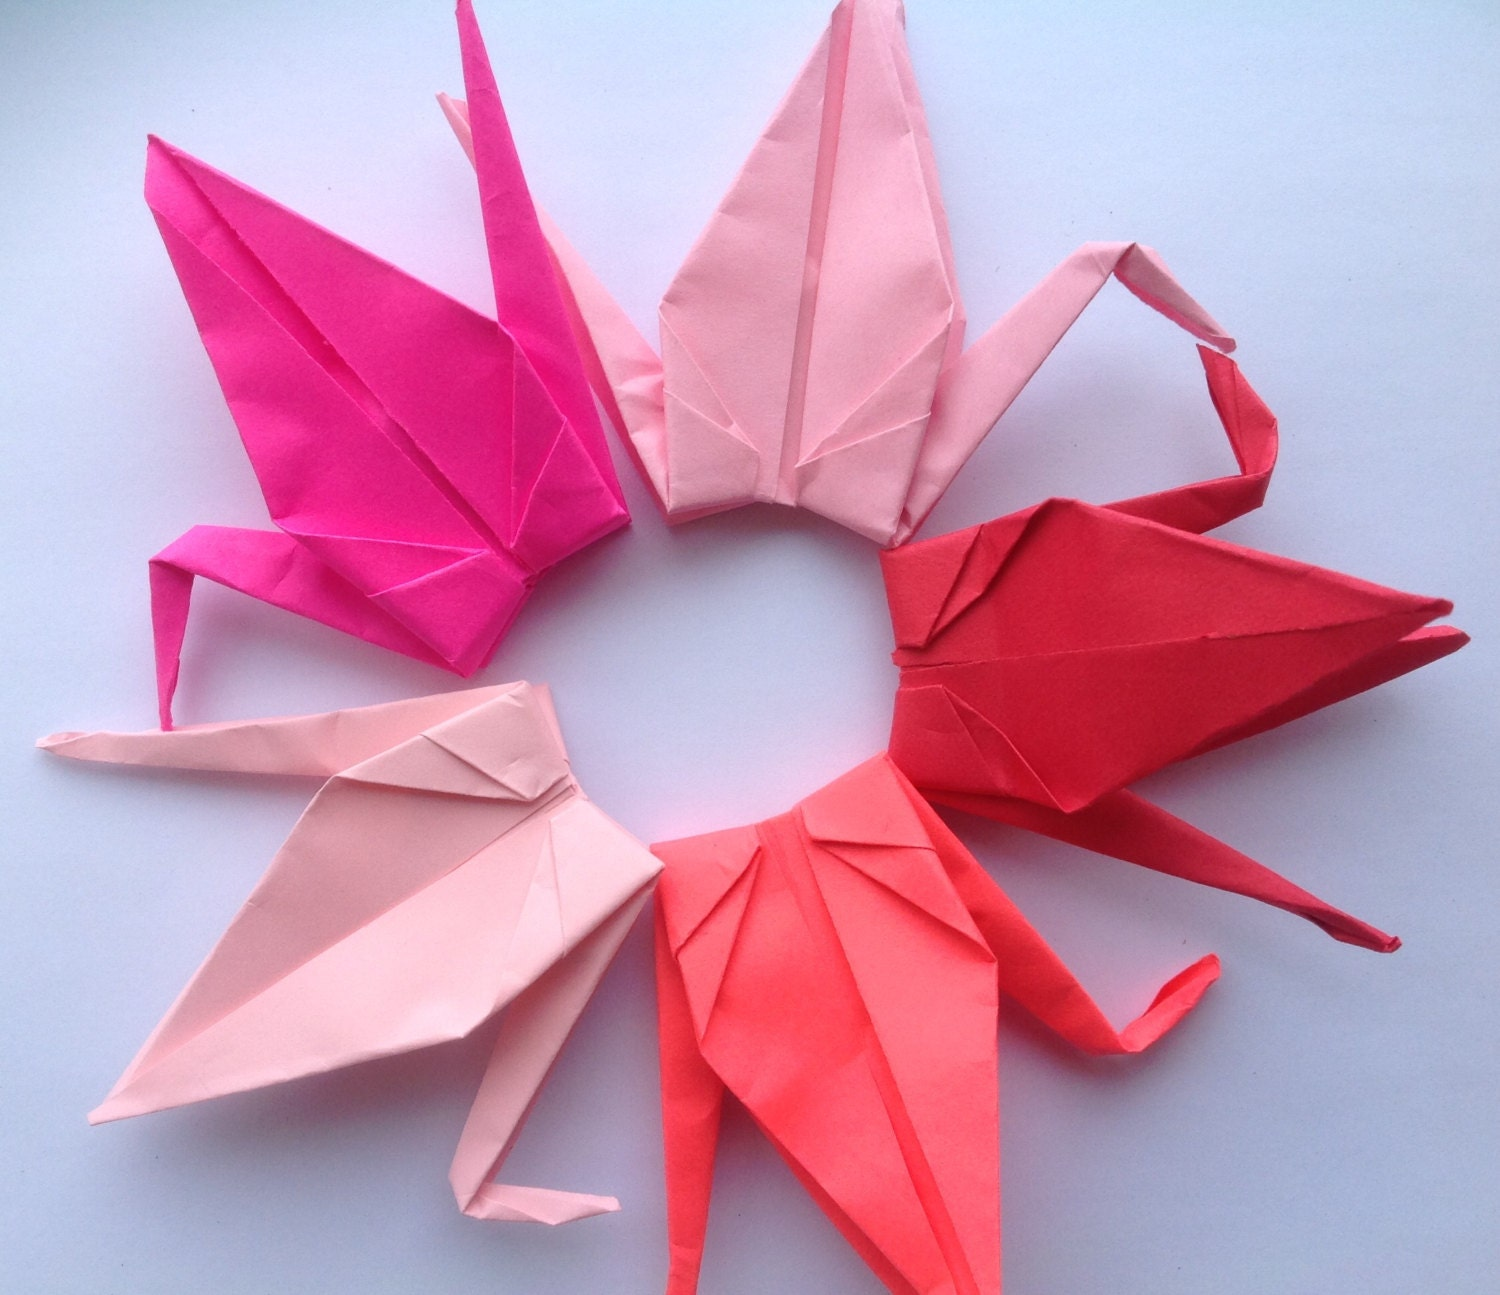 1000 5 5 origami cranes paper cranes wedding for 1000 paper cranes wedding decoration